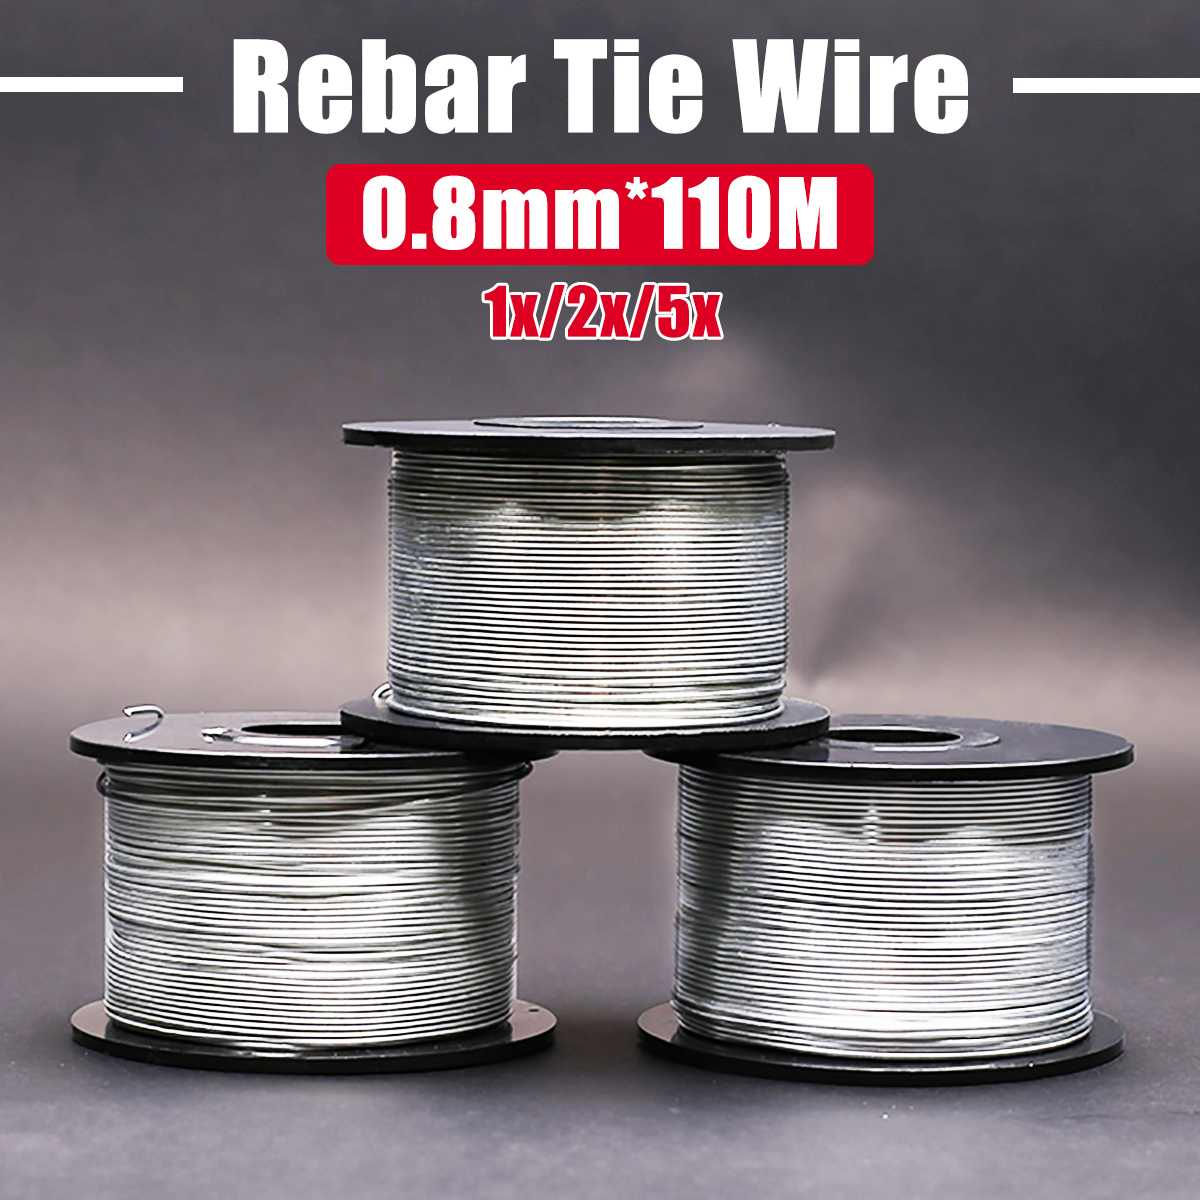 1/2PCS 110M 0.8mm Steel Tie Wire Coil Antirust For Automatic Rebar Tying Machine New Arrival